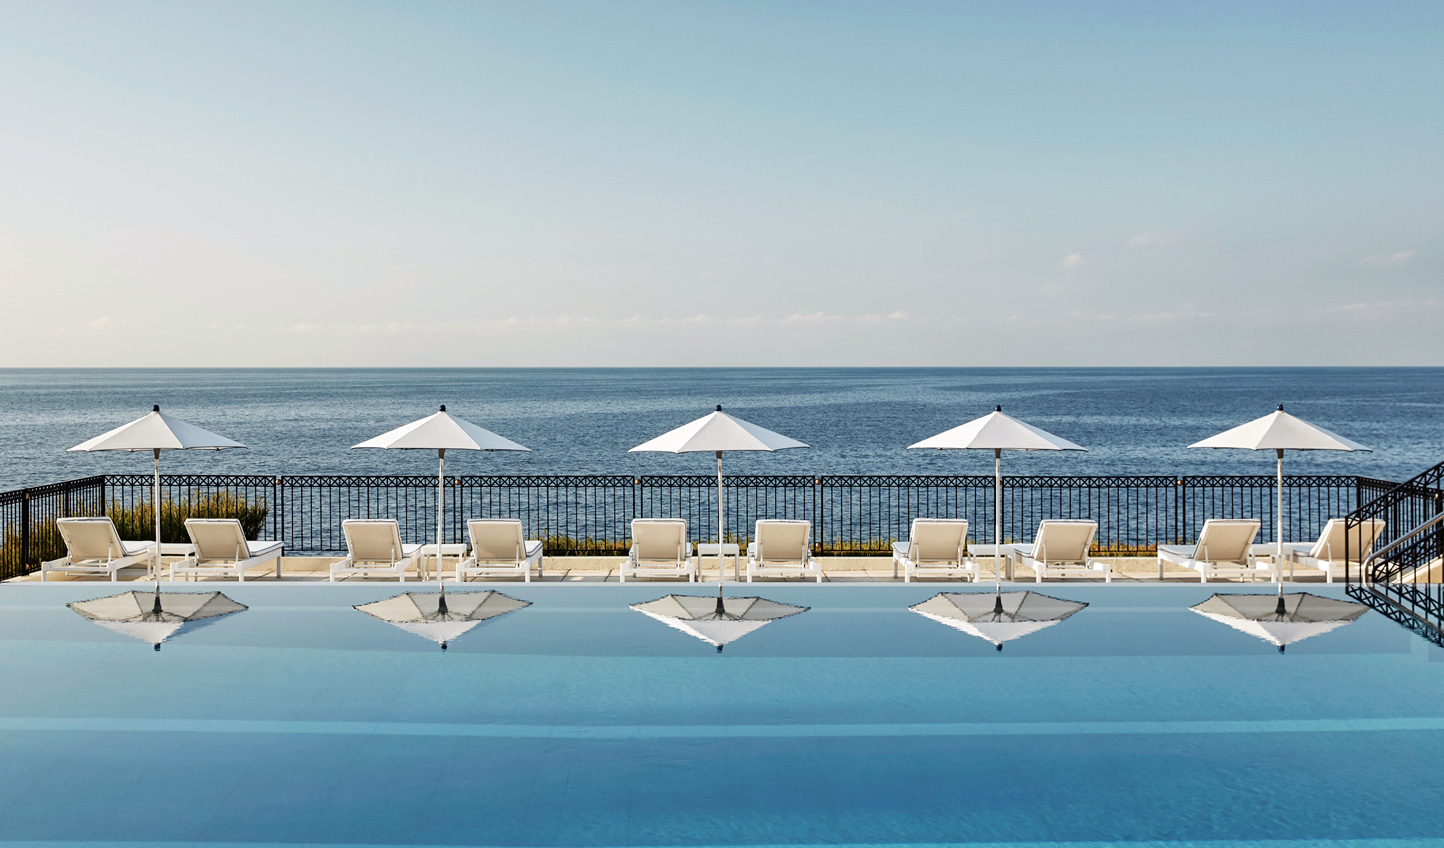 A fashionable place to catch some sun at Grand Hotel du Cap Ferrat